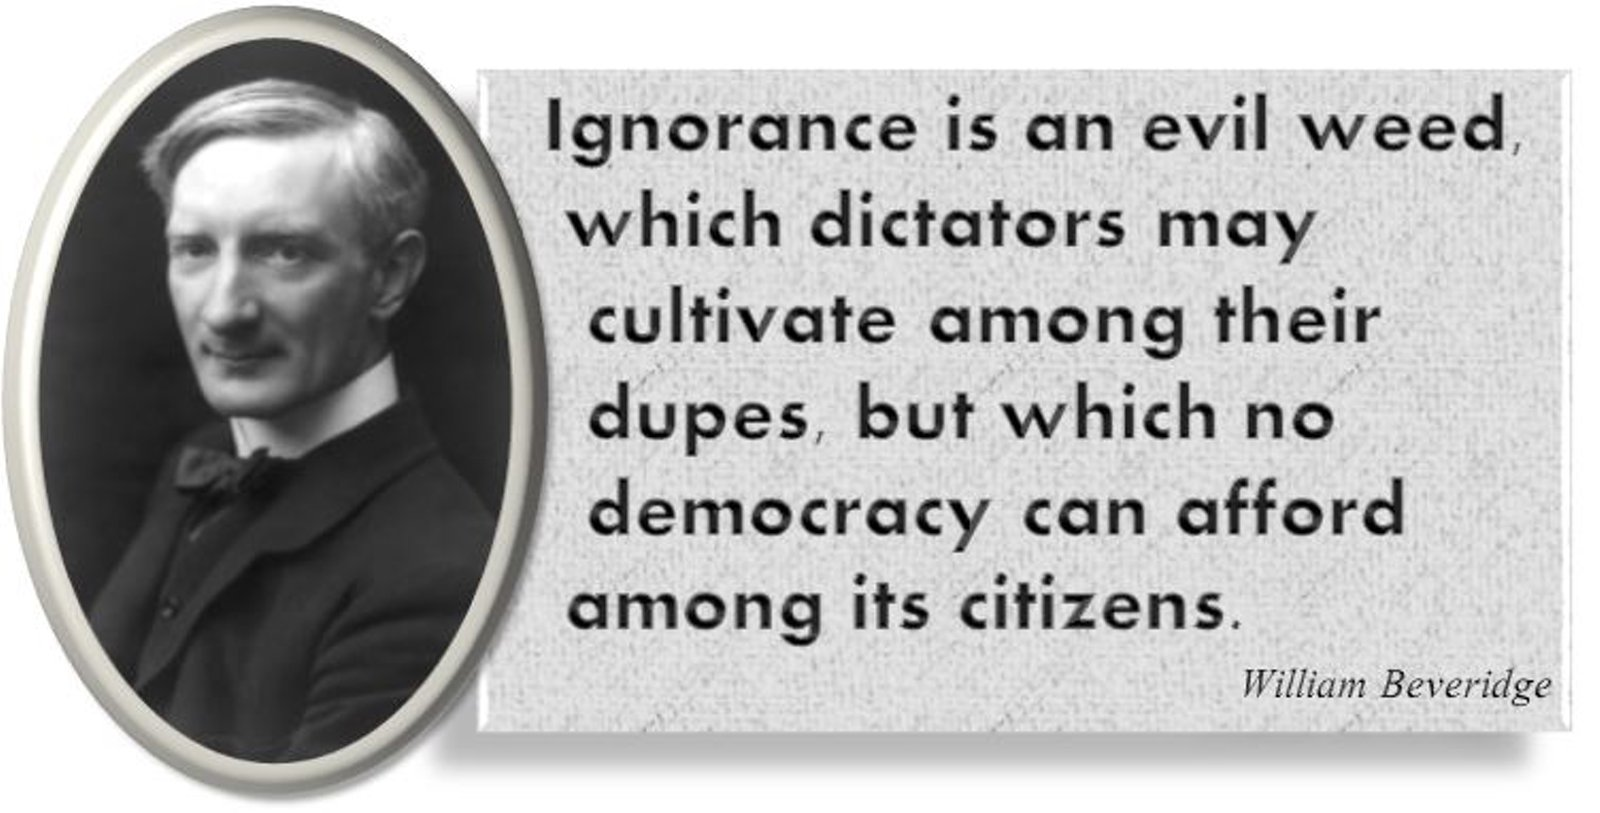 William Beveridge